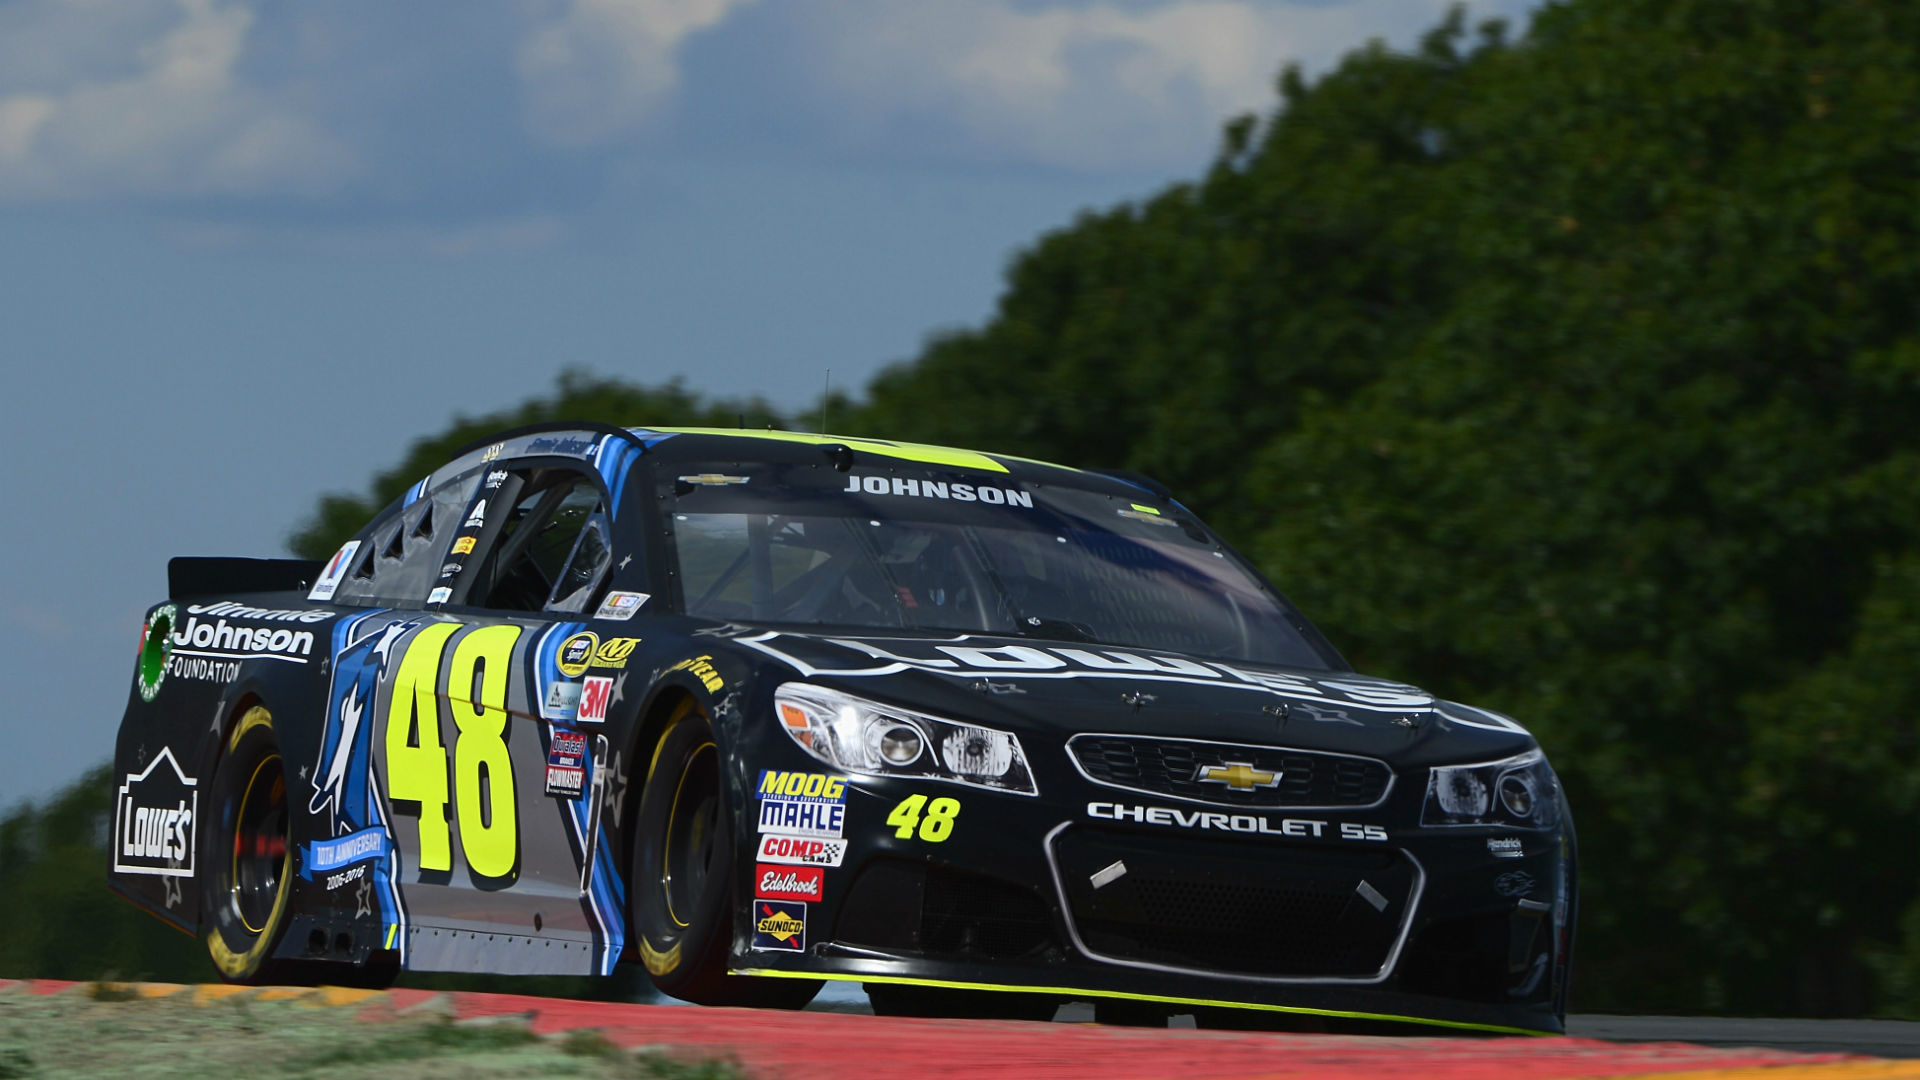 NASCAR at Indianapolis: TV schedule, standings, qualifying drivers for the Brickyard 400